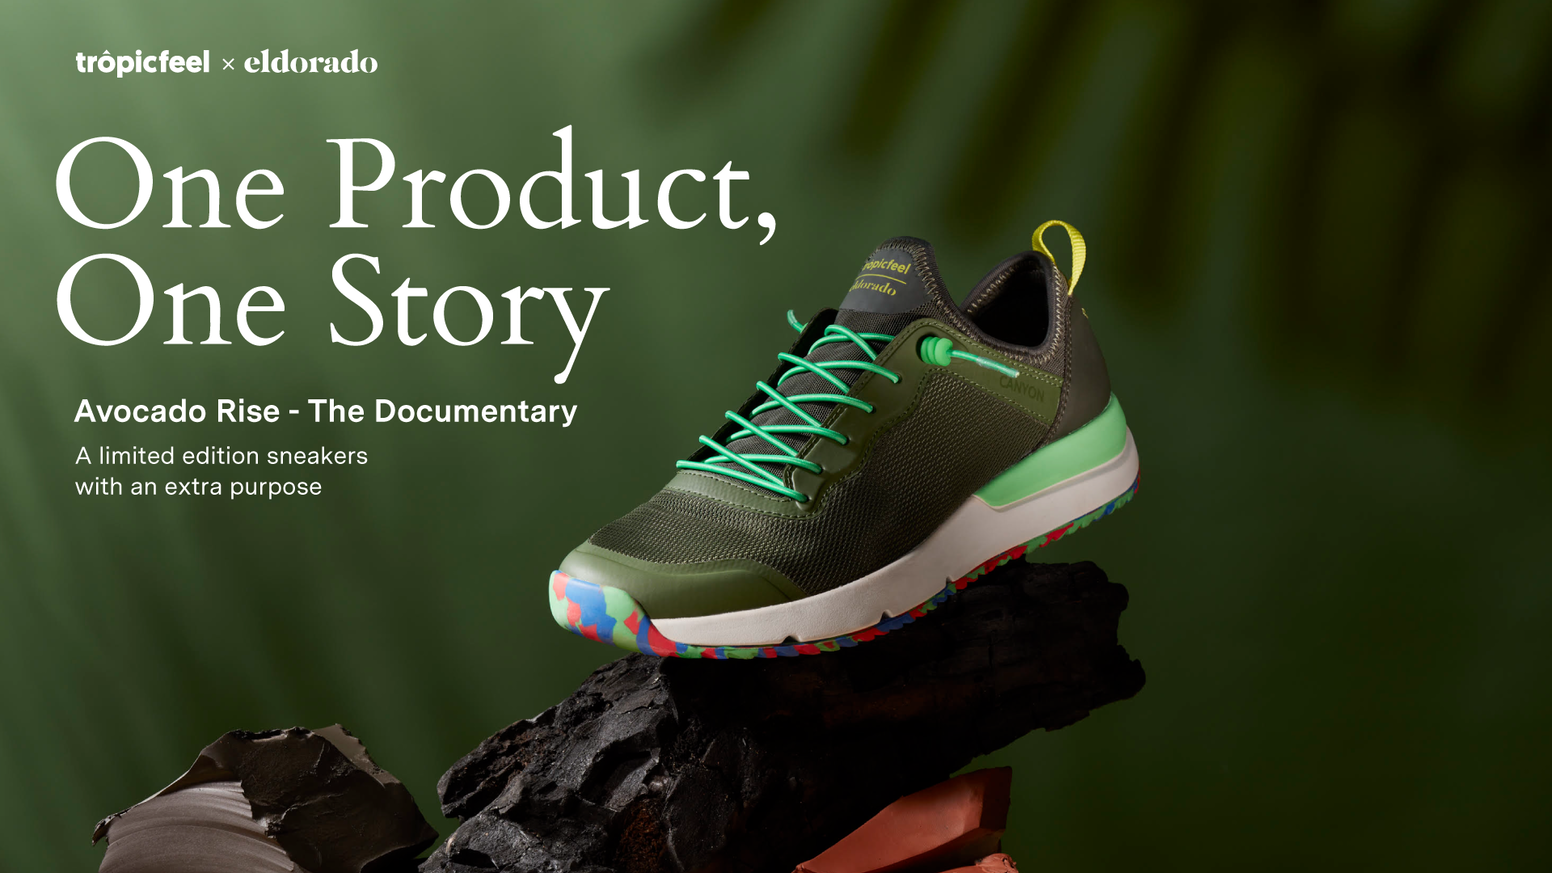 Kickstarter's #1 best-selling shoe is back with an extra purpose.  Turn invisible problems into documentaries that report social issues